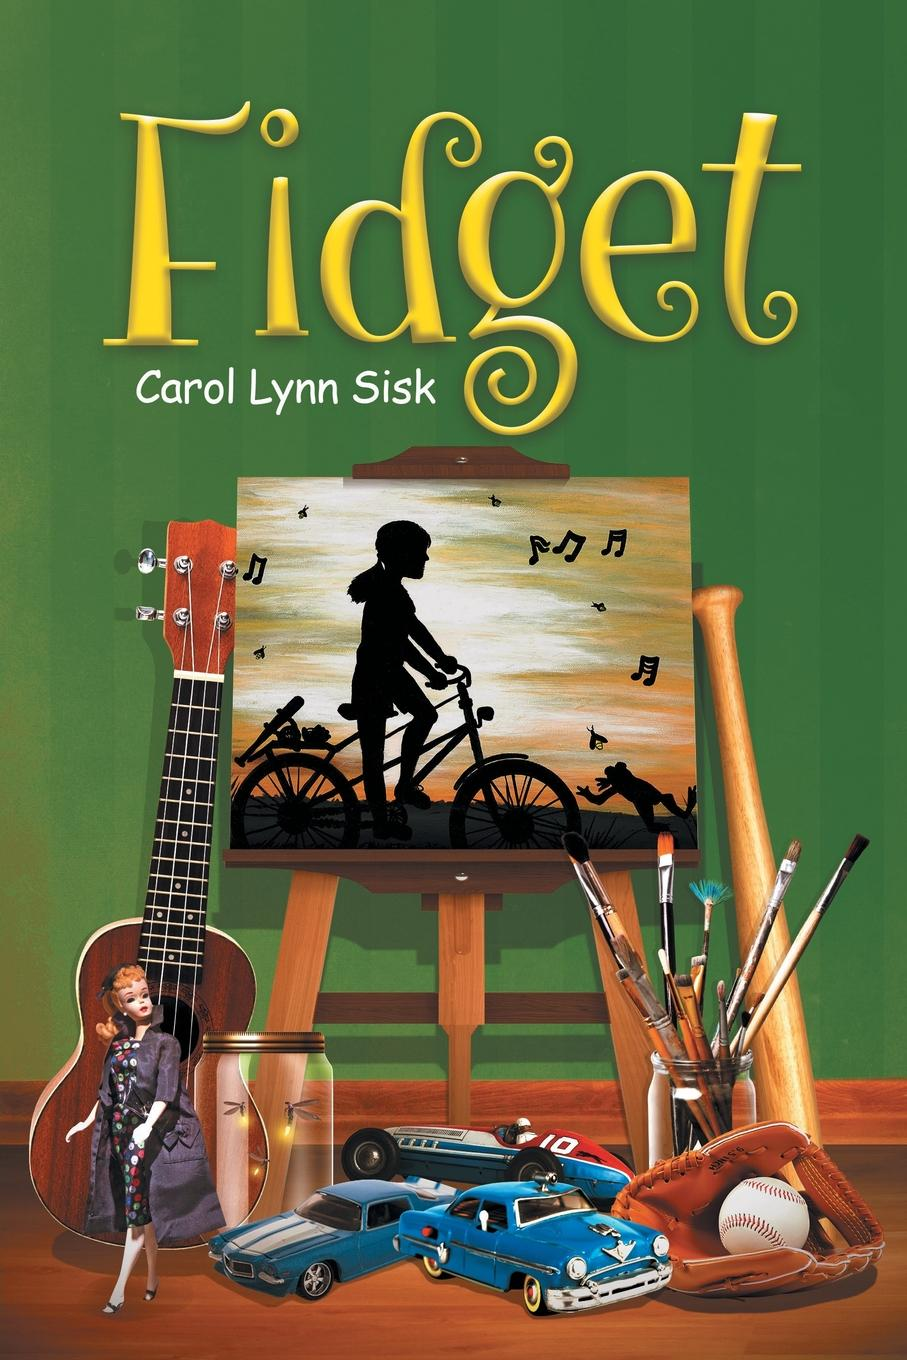 Carol Lynn Sisk Fidget stephen walker hide and seek the irish priest in the vatican who defied the nazi command the dramatic true story of rivalry and survival during wwii